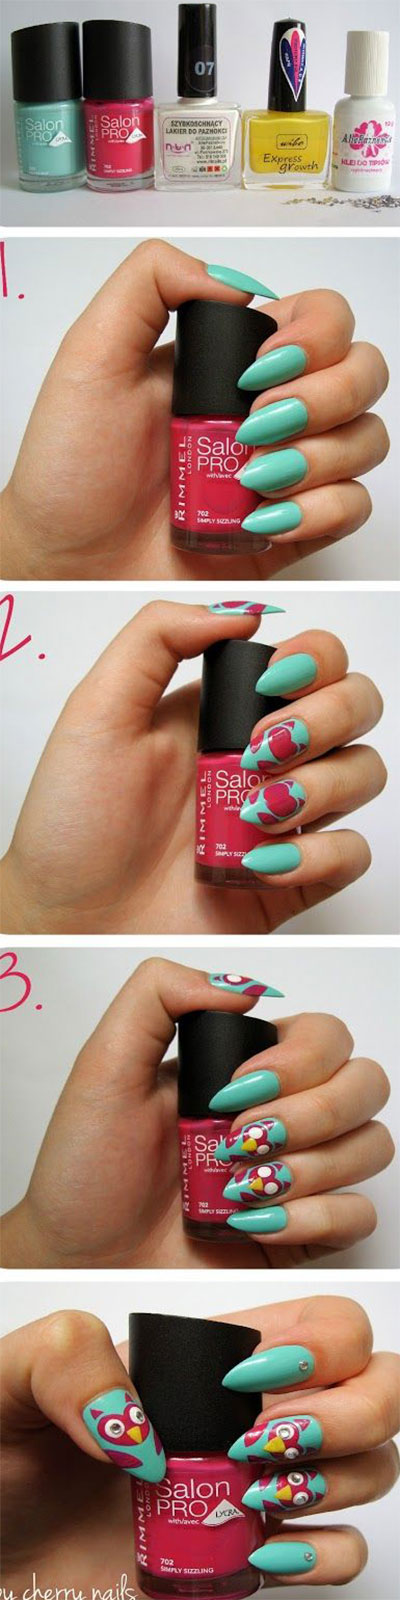 10-Easy-Step-By-Step-Owl-Nail-Art-Tutorials-For-Beginners-2014-9